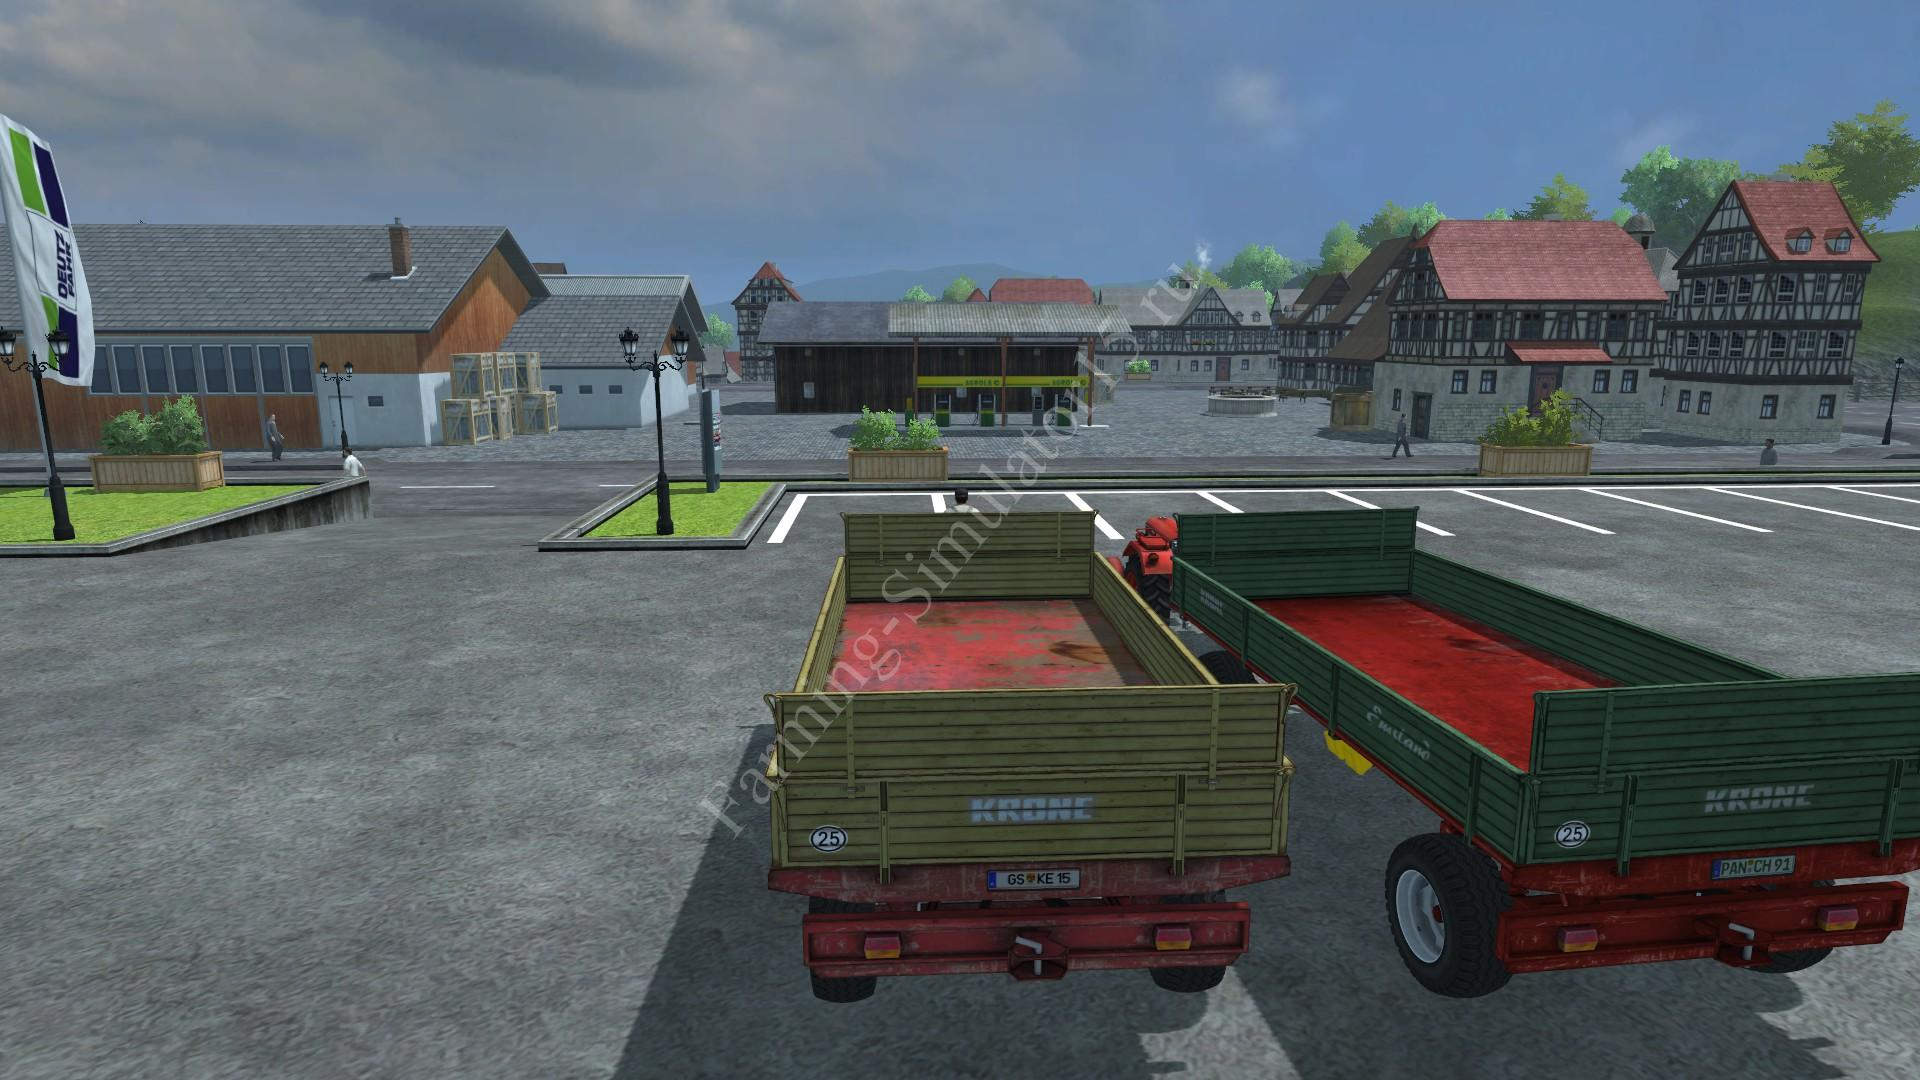 Мод прицепа для тюков Krone Emsland Ball Pack v 1.0 Farming Simulator 2013, Farming Simulator 13